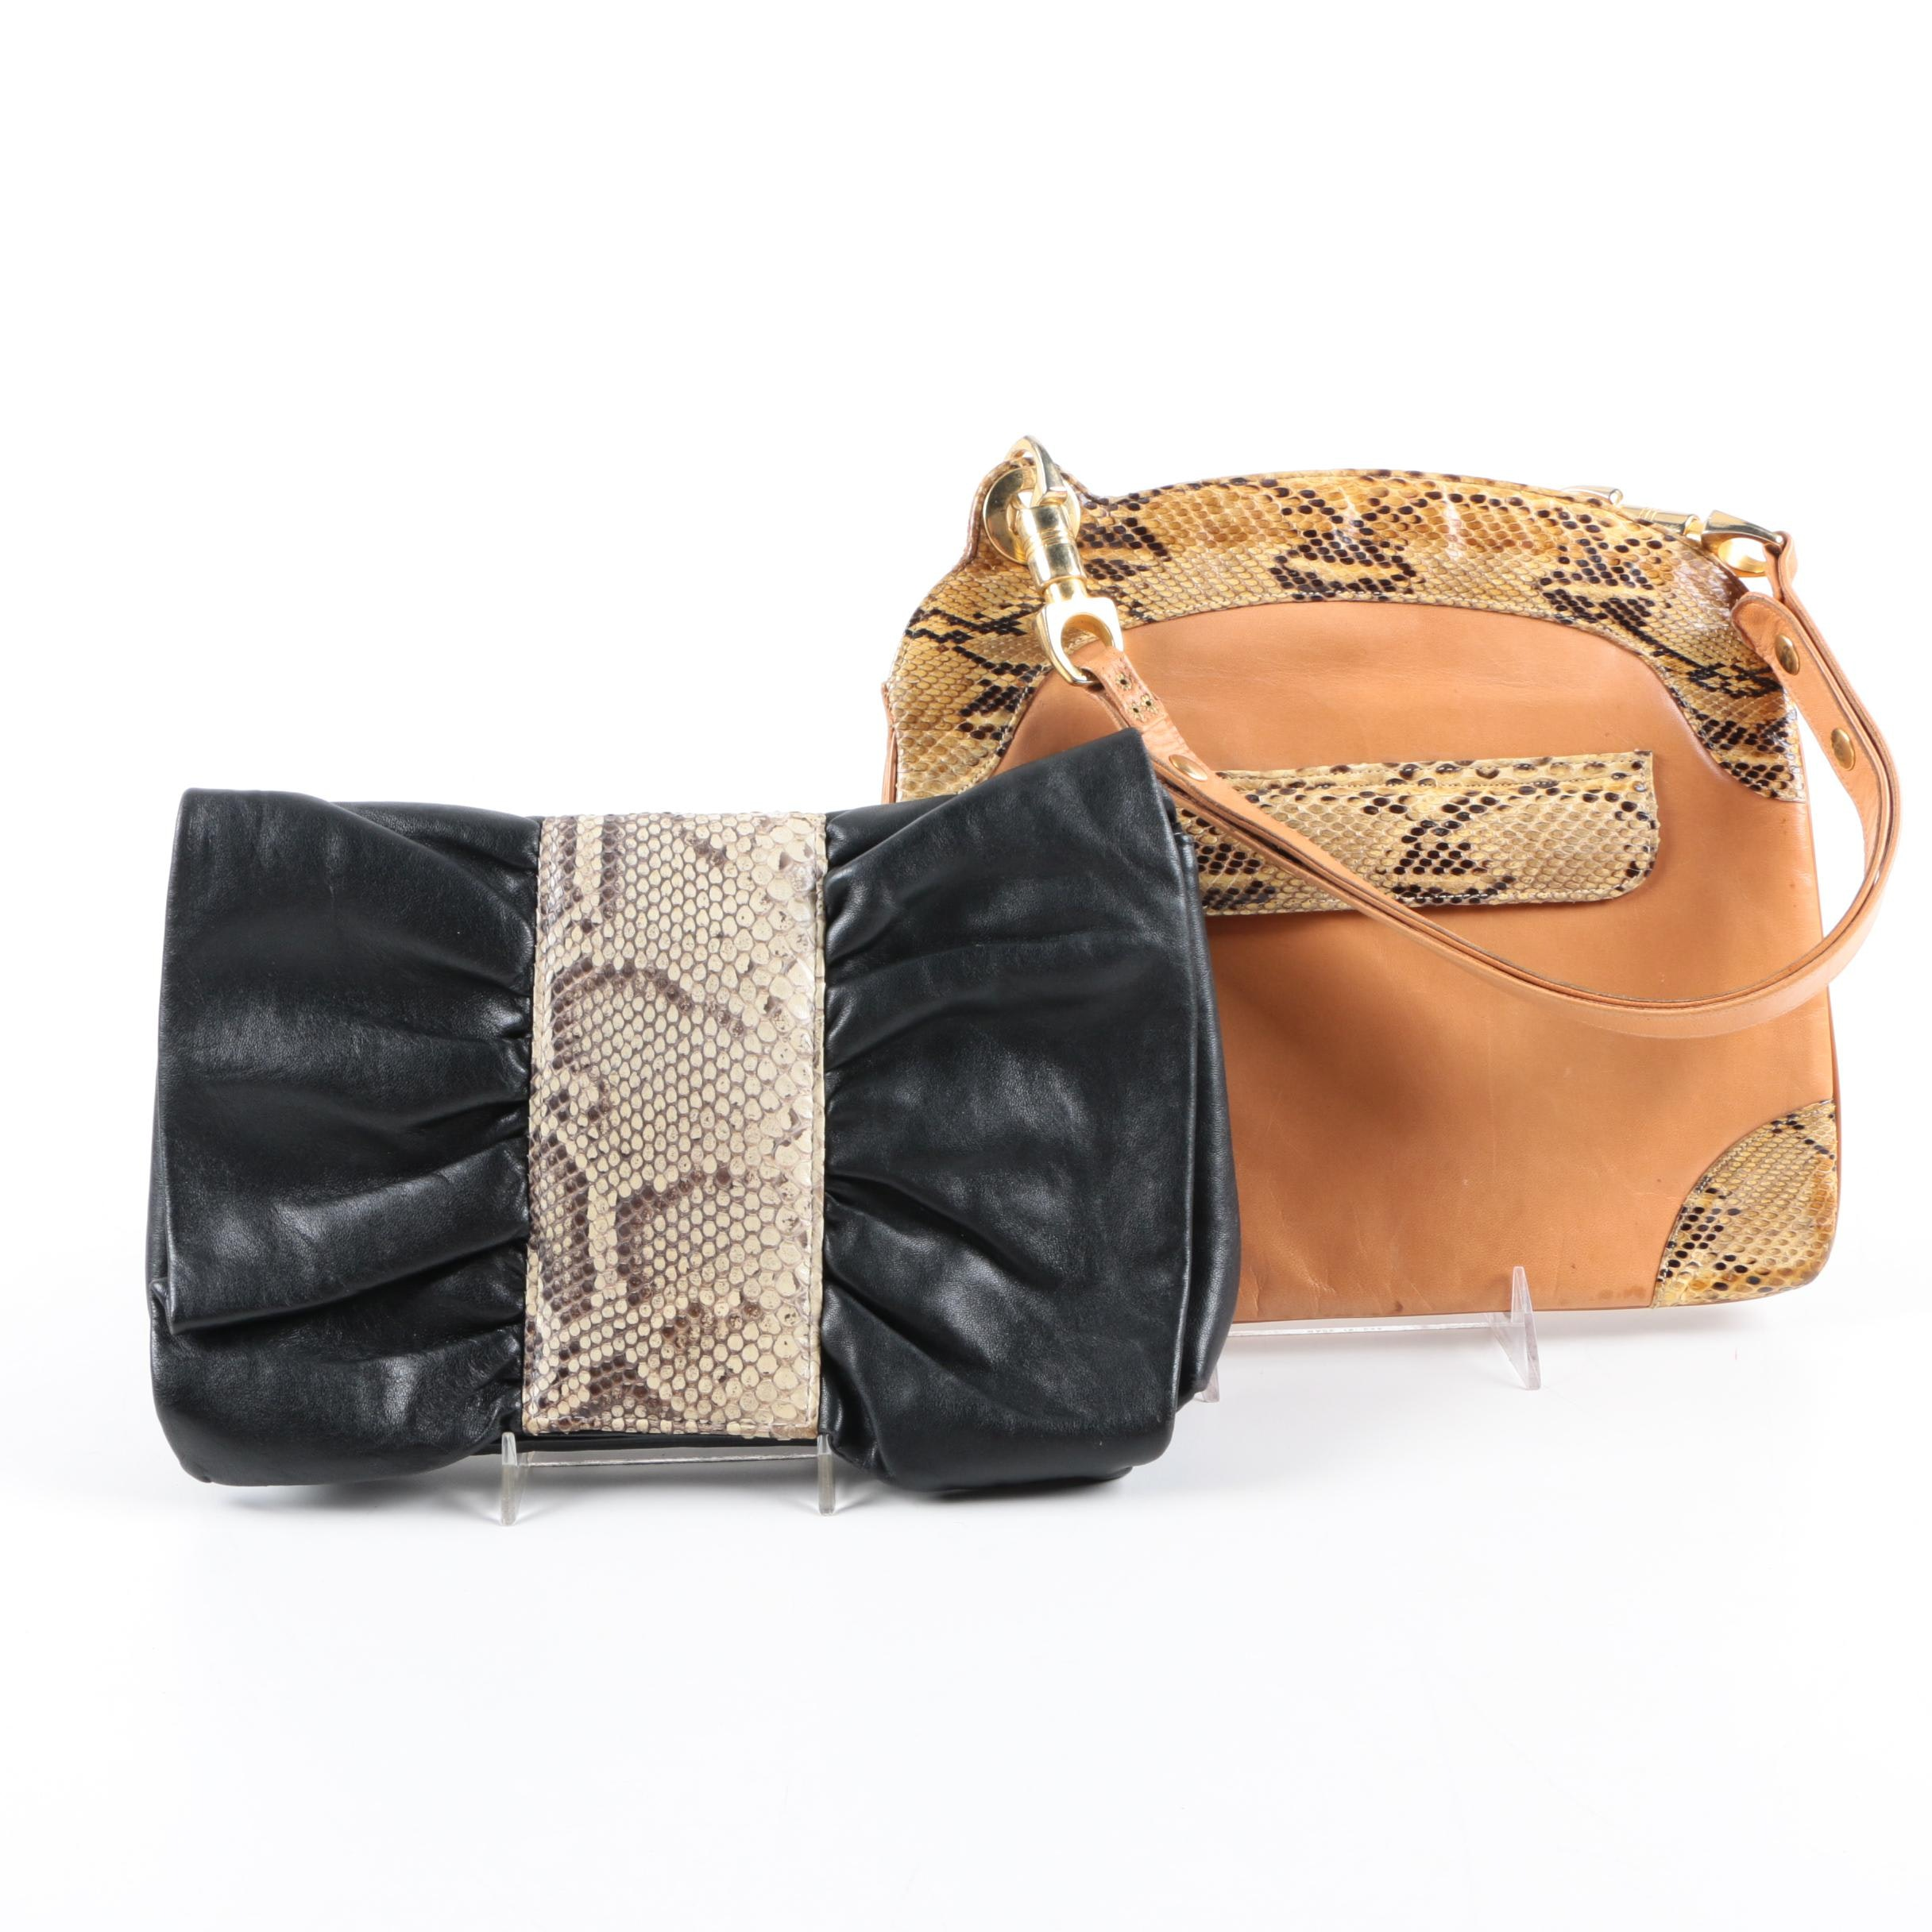 Vintage Leather and Python Trimmed Handbags